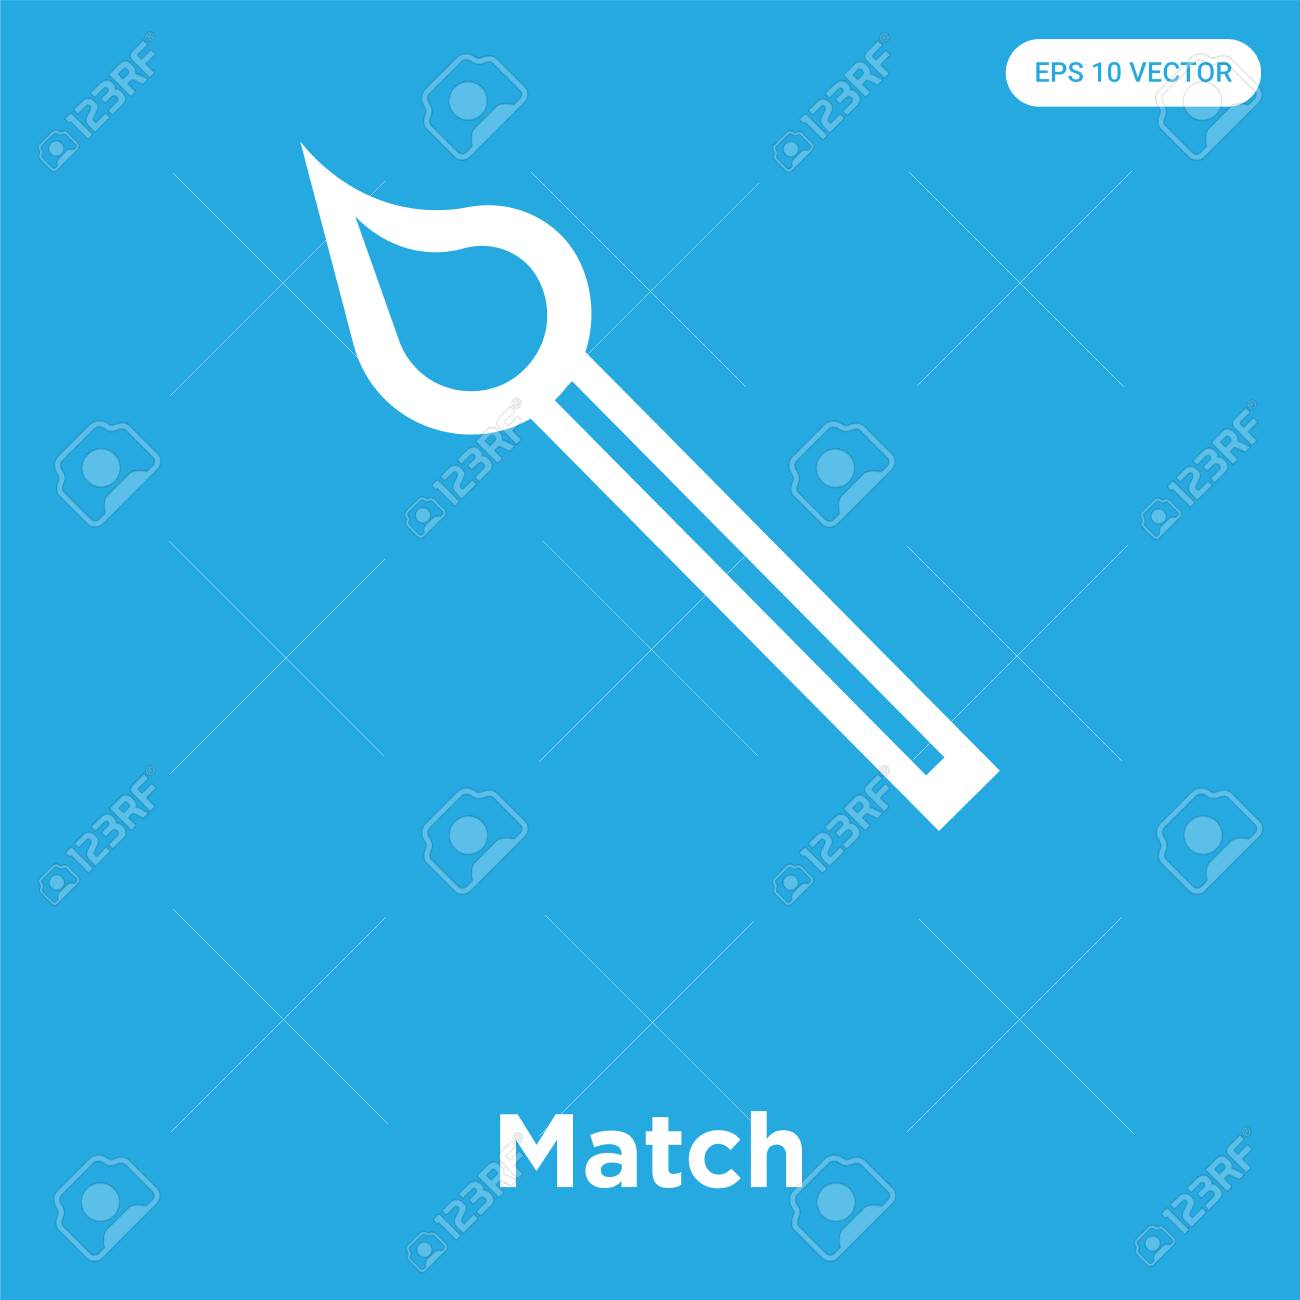 Match vector icon isolated on blue background, sign and symbol, Match icons collection - 114806112